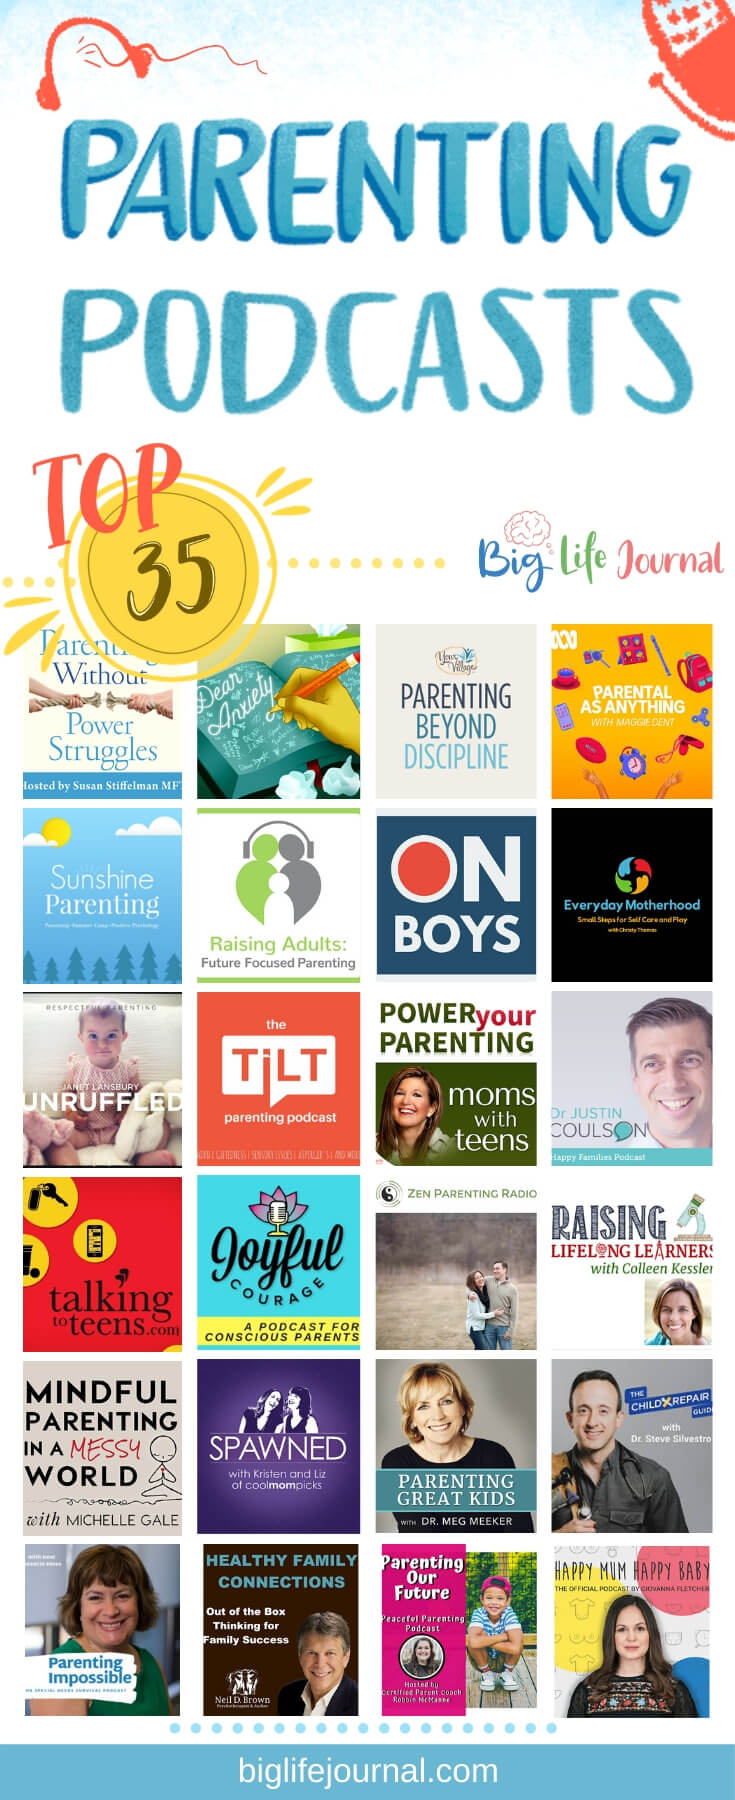 Top 35 Parenting Podcasts